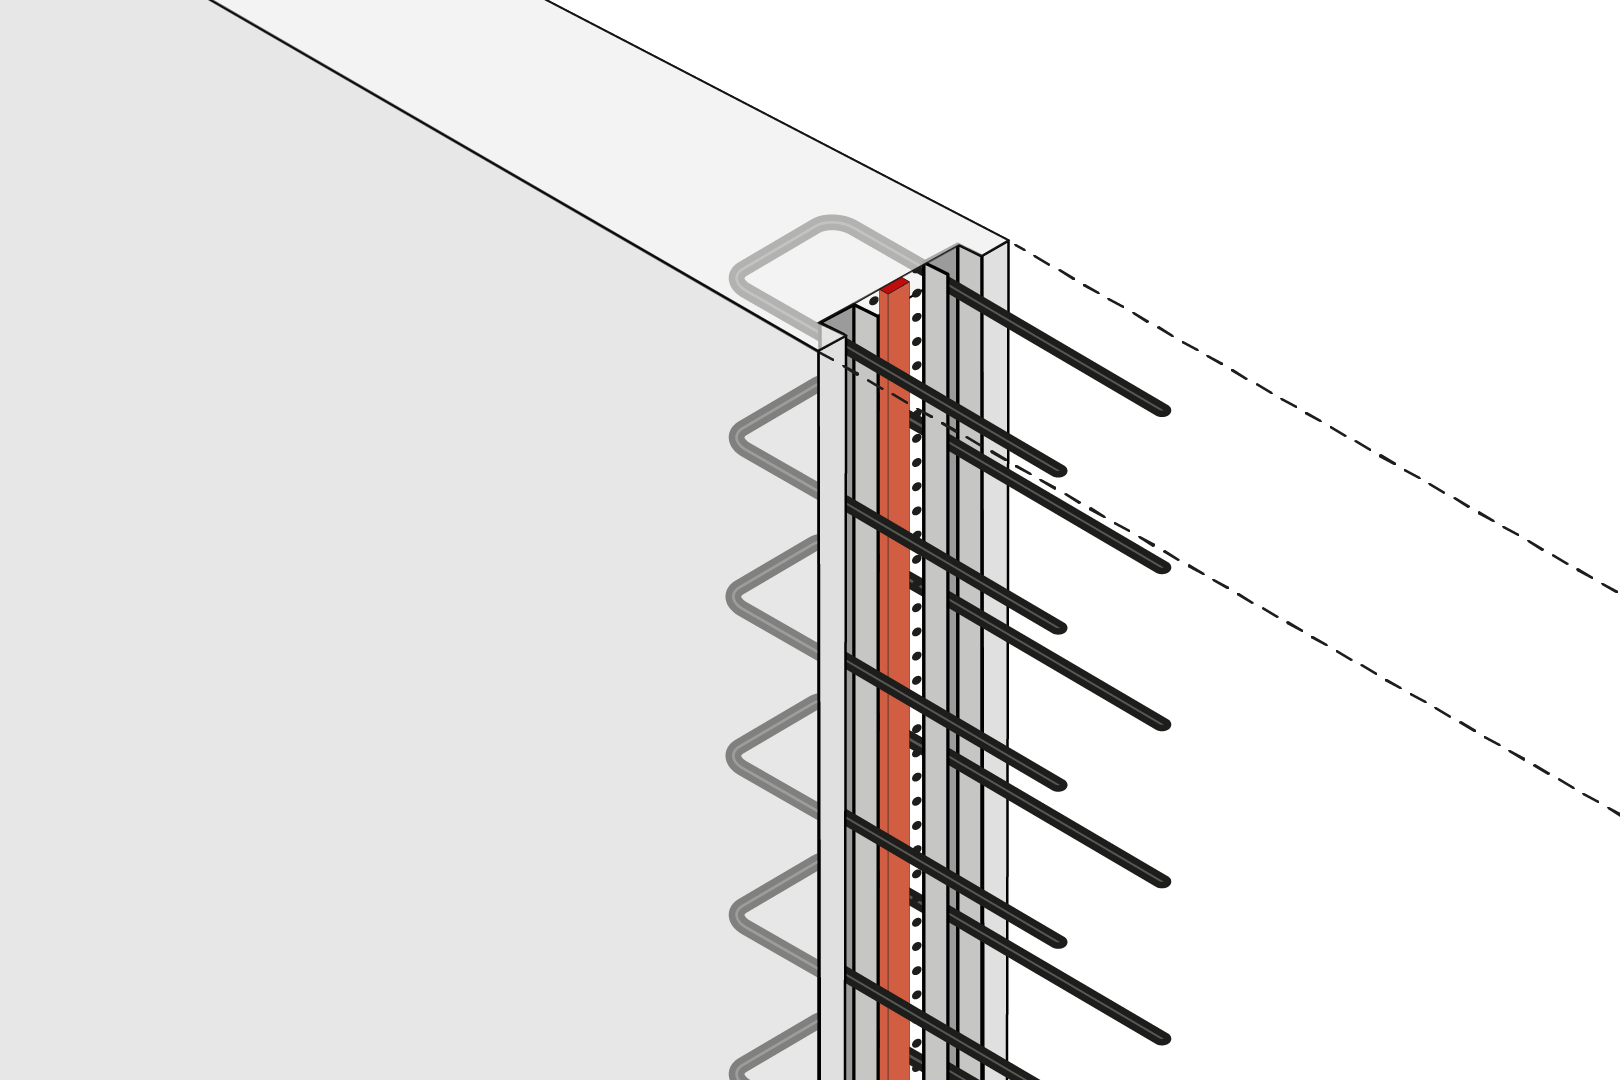 Construction Joint With Reinforcement Connection For Force Transmission And Expanding Waterstop